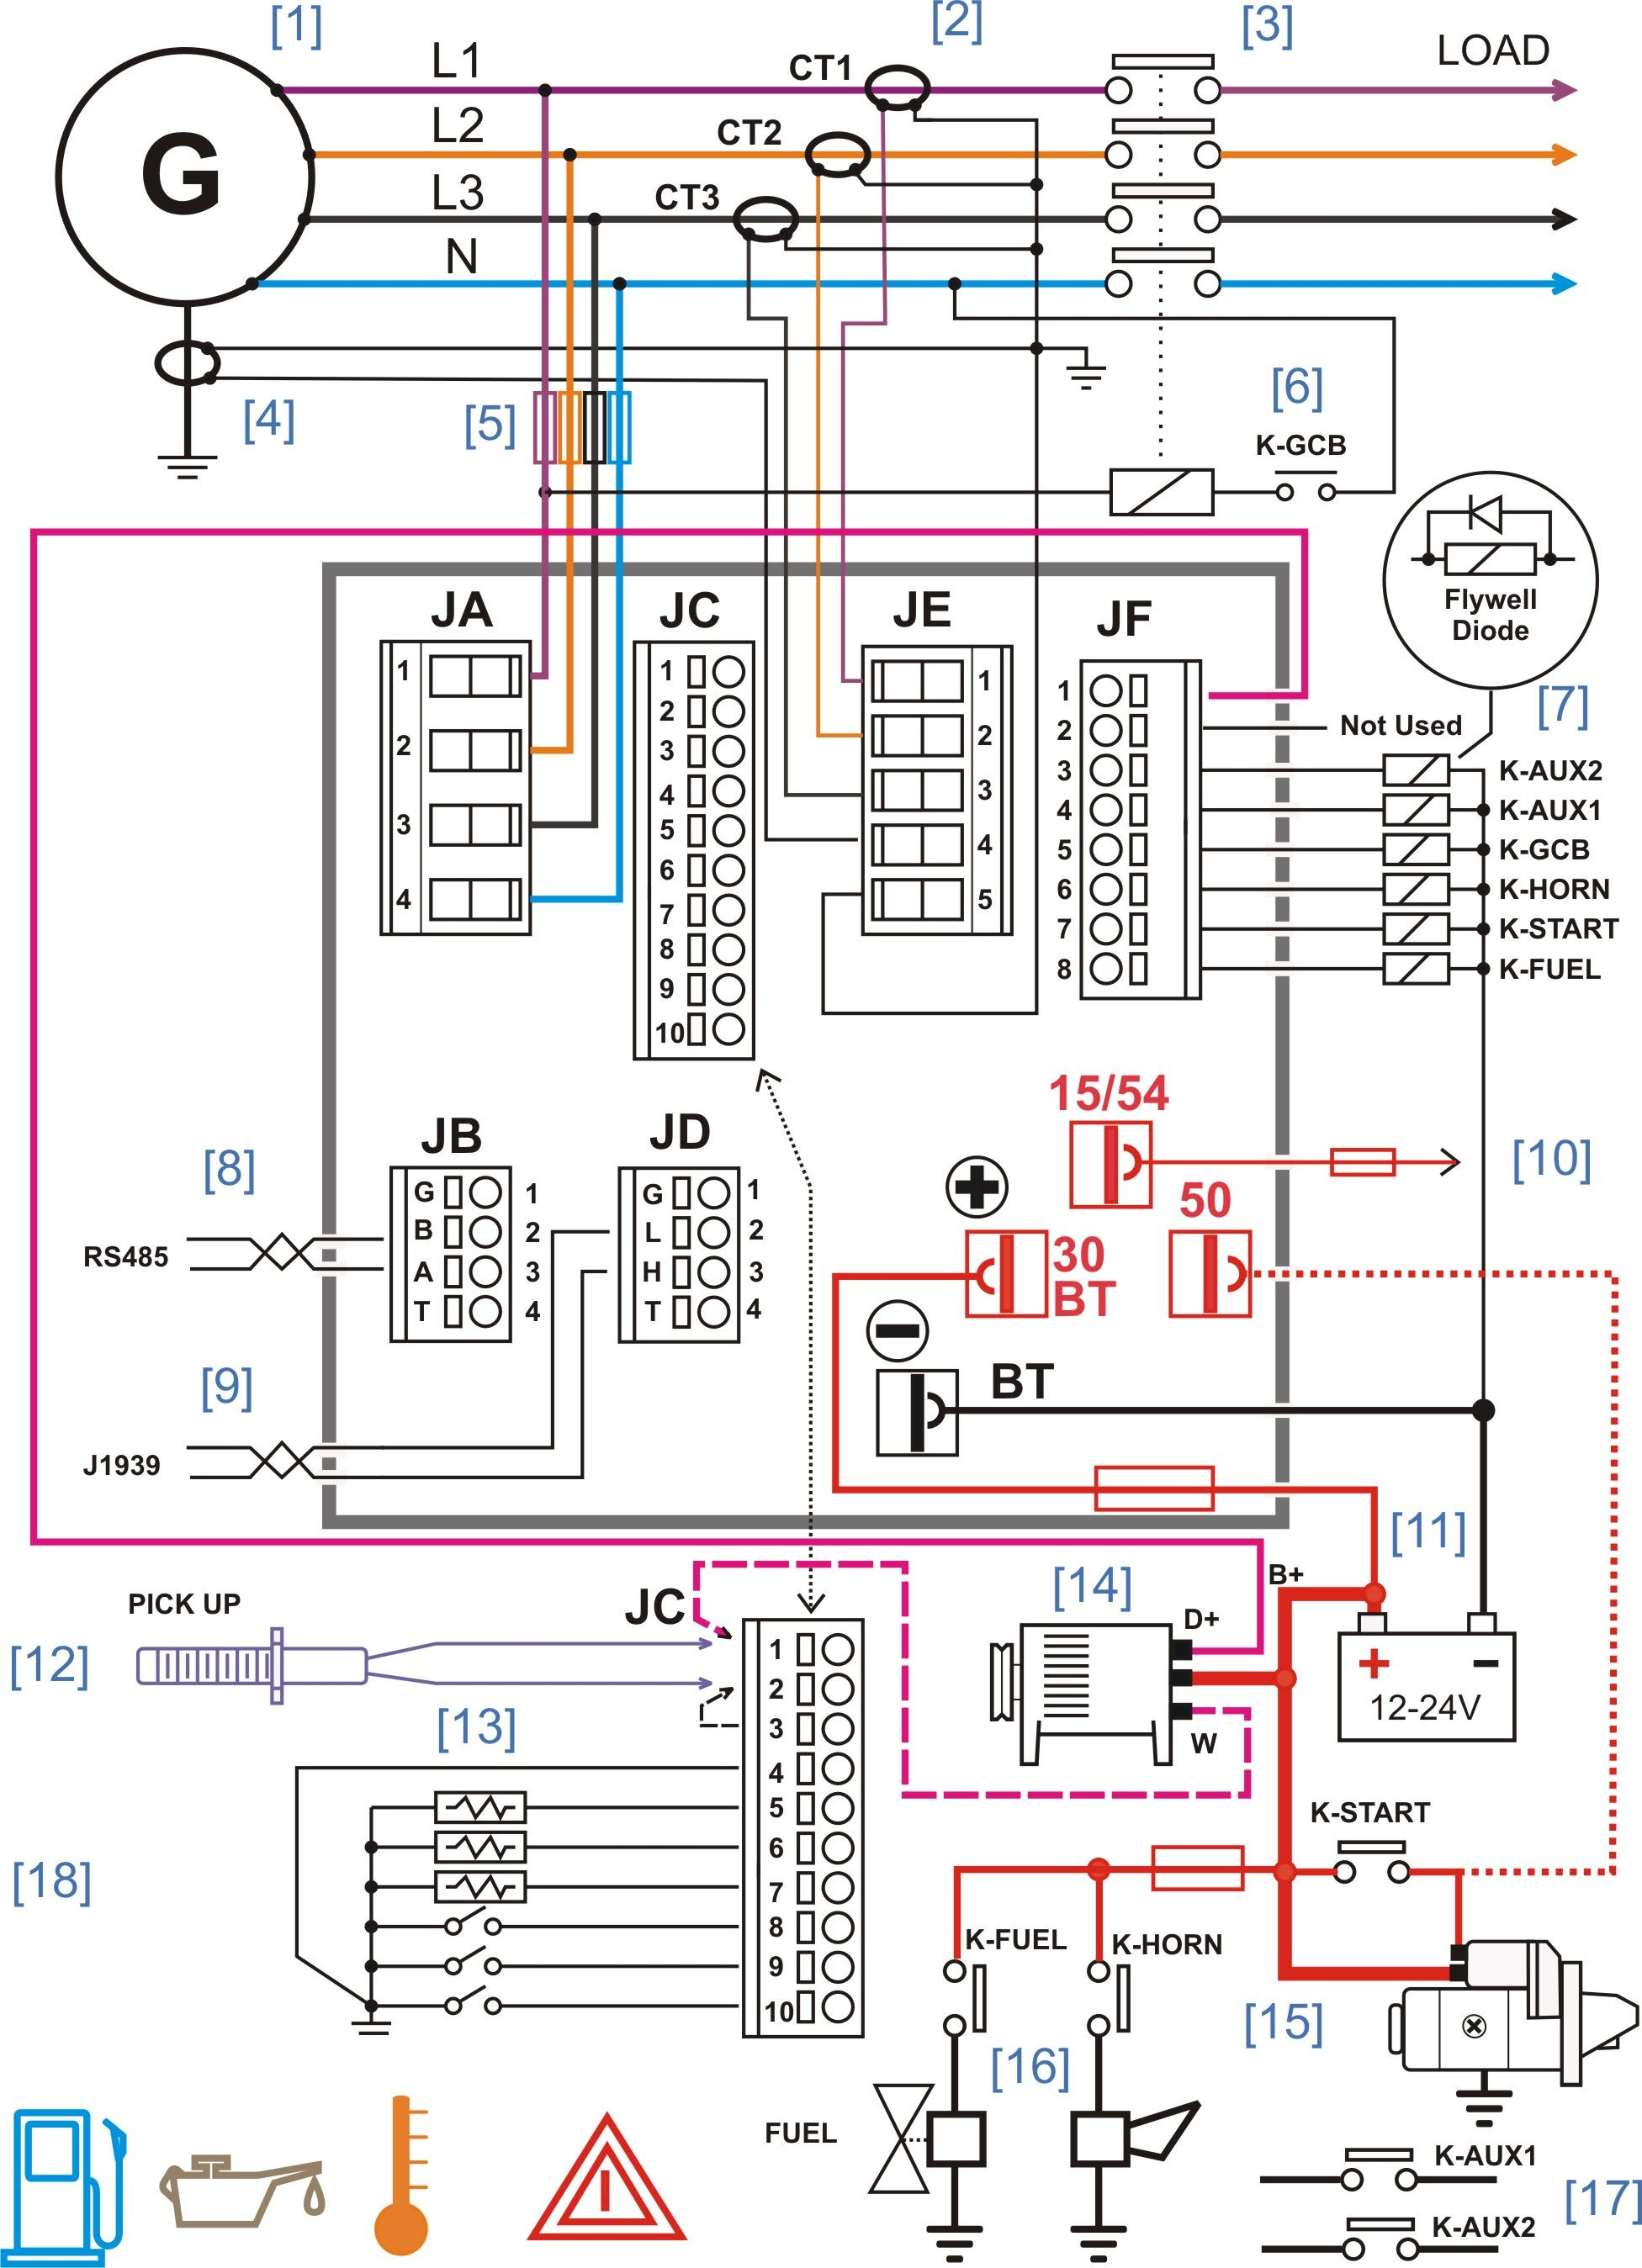 Staircase Wiring Pdf - Wiring Diagram Data on home electrical wiring pdf, water heater diagram pdf, electrical symbols pdf, electrical block diagram pdf, floor plan pdf, electrical wiring blueprint pdf, electrical diagram symbols, electrical training boards, basic electrical wiring pdf,